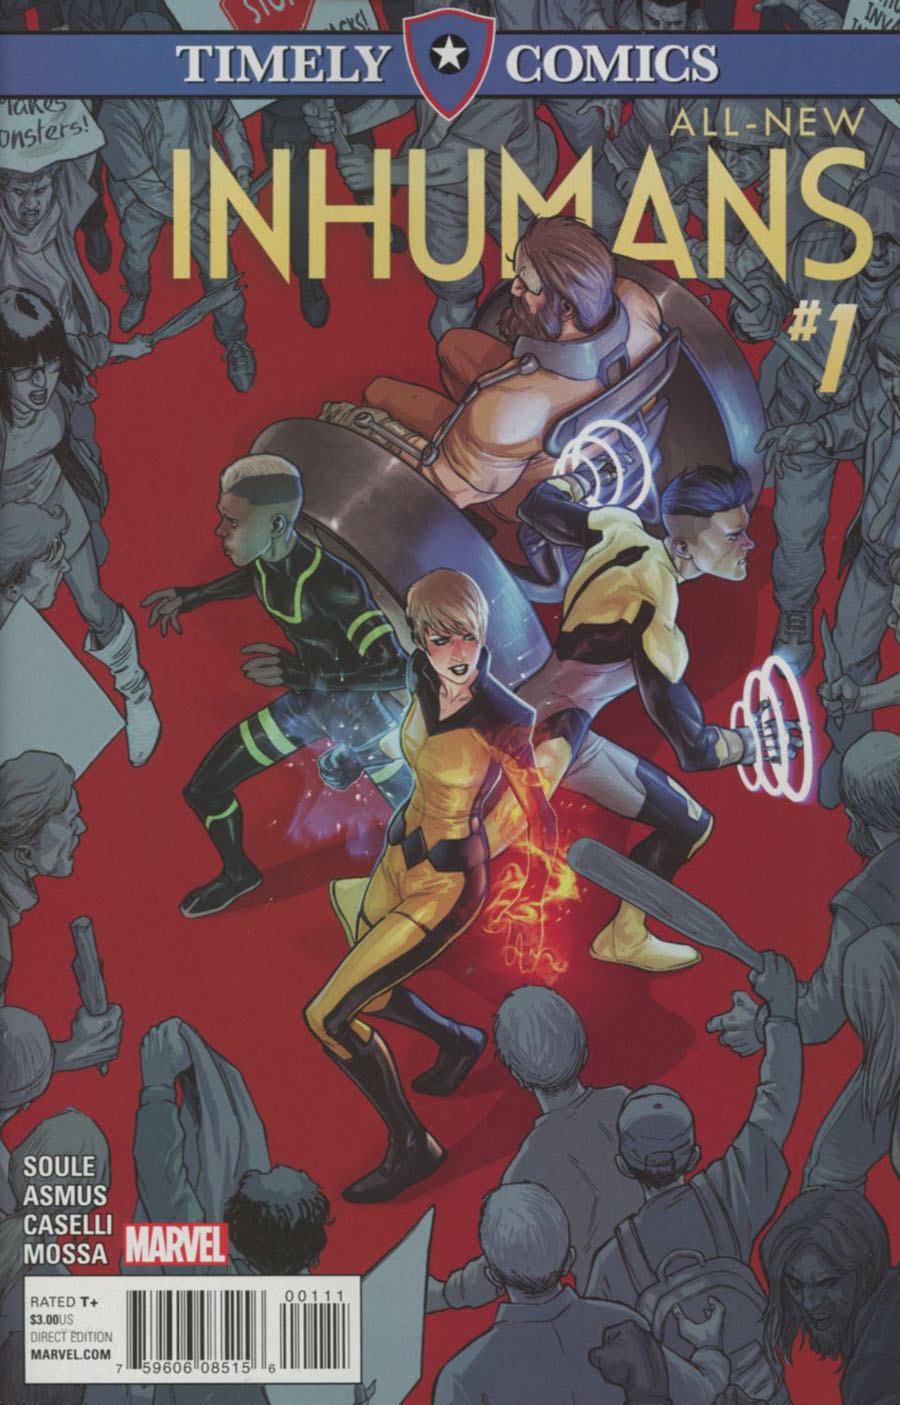 Timely Comics All-New Inhumans #1